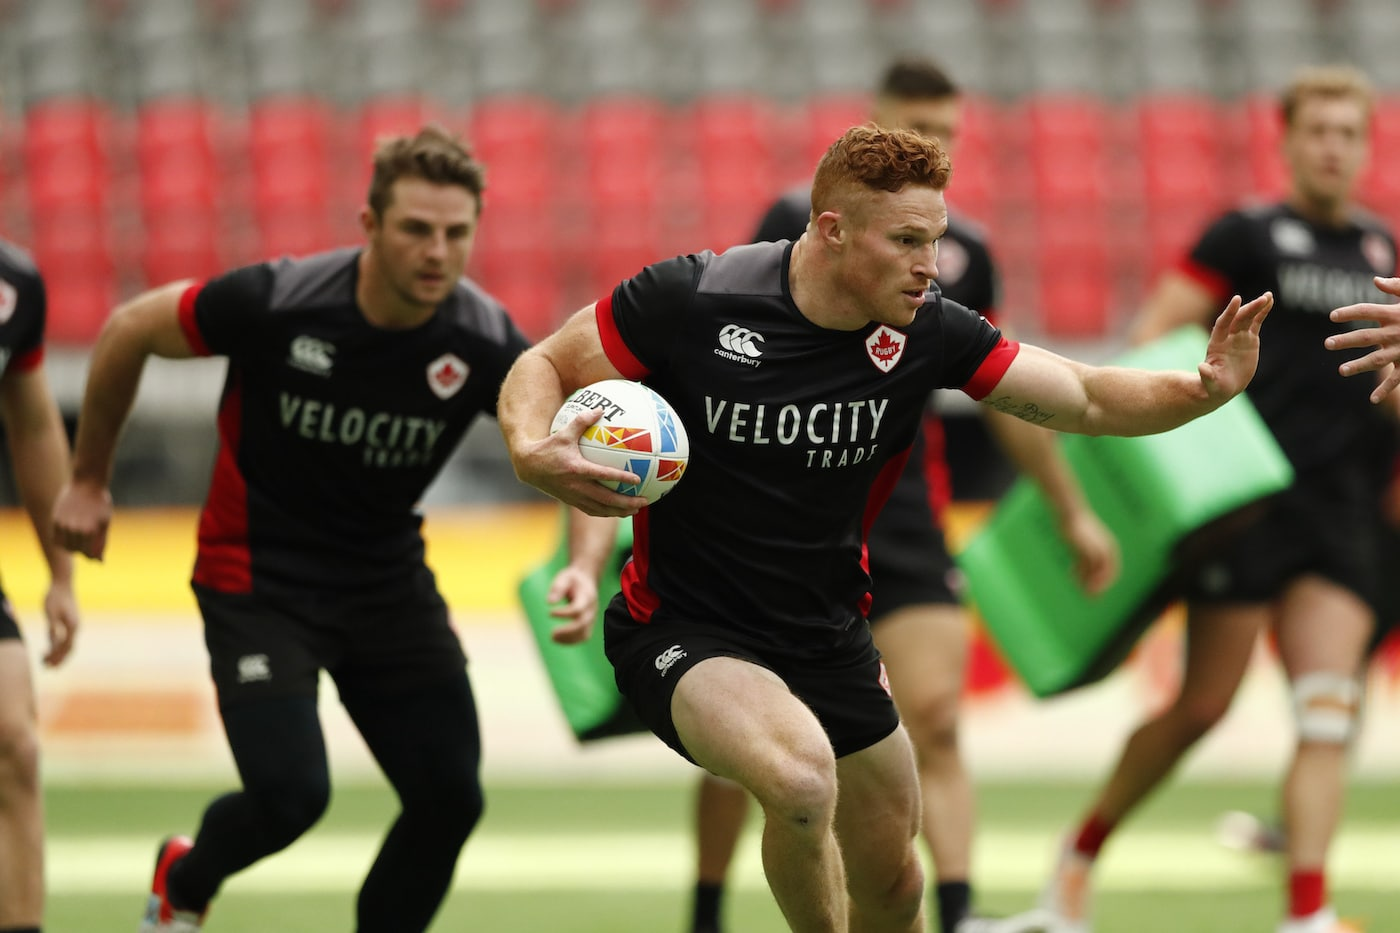 Rugby Sevens Match Schedule For Tokyo 2020 Olympic Games